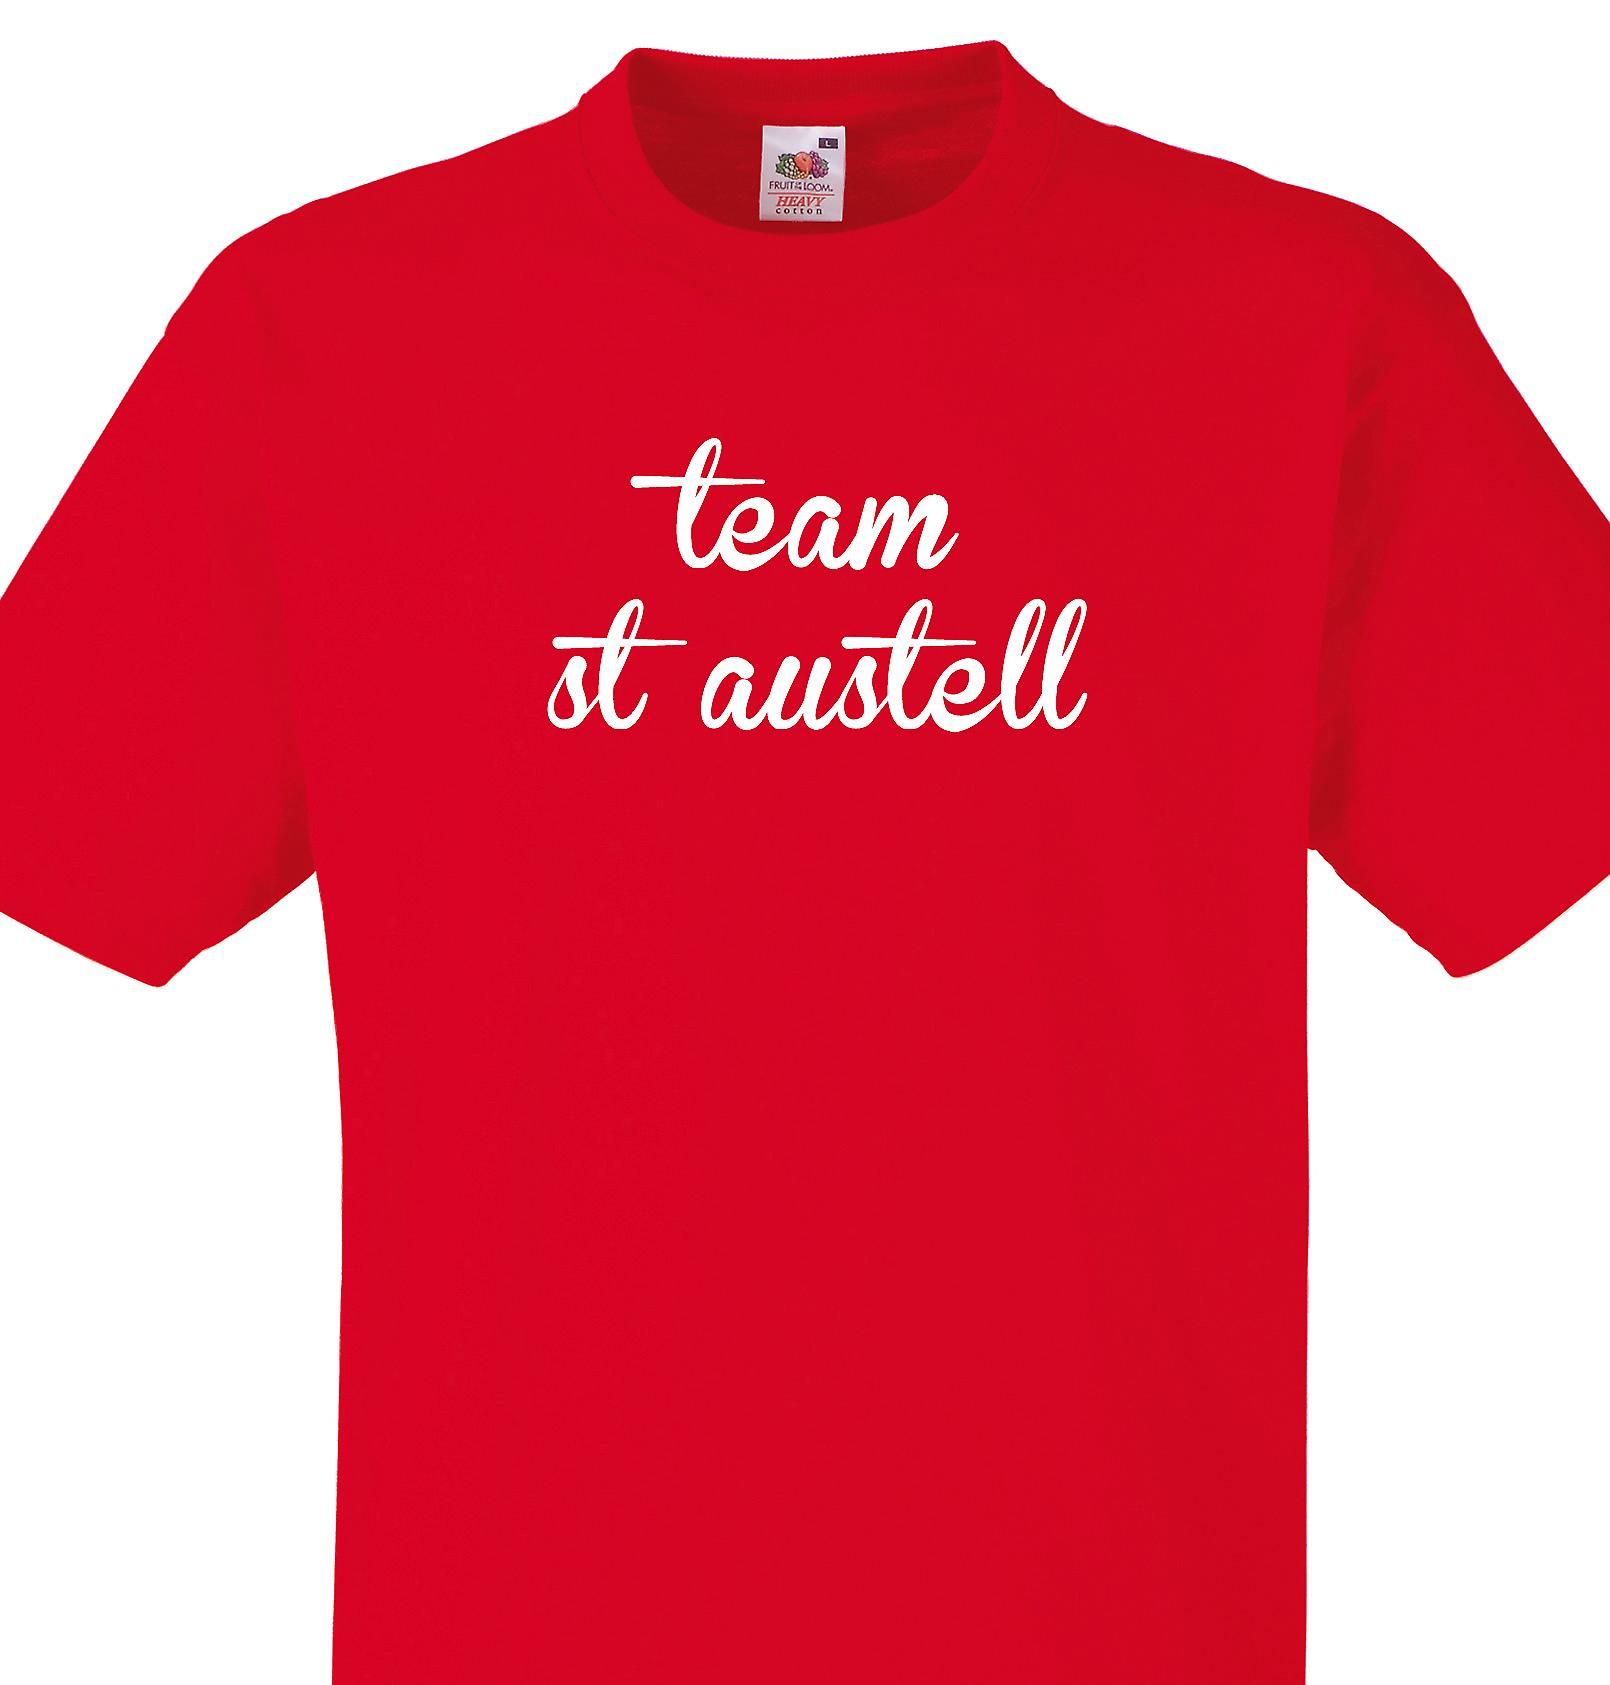 Team St austell Red T shirt